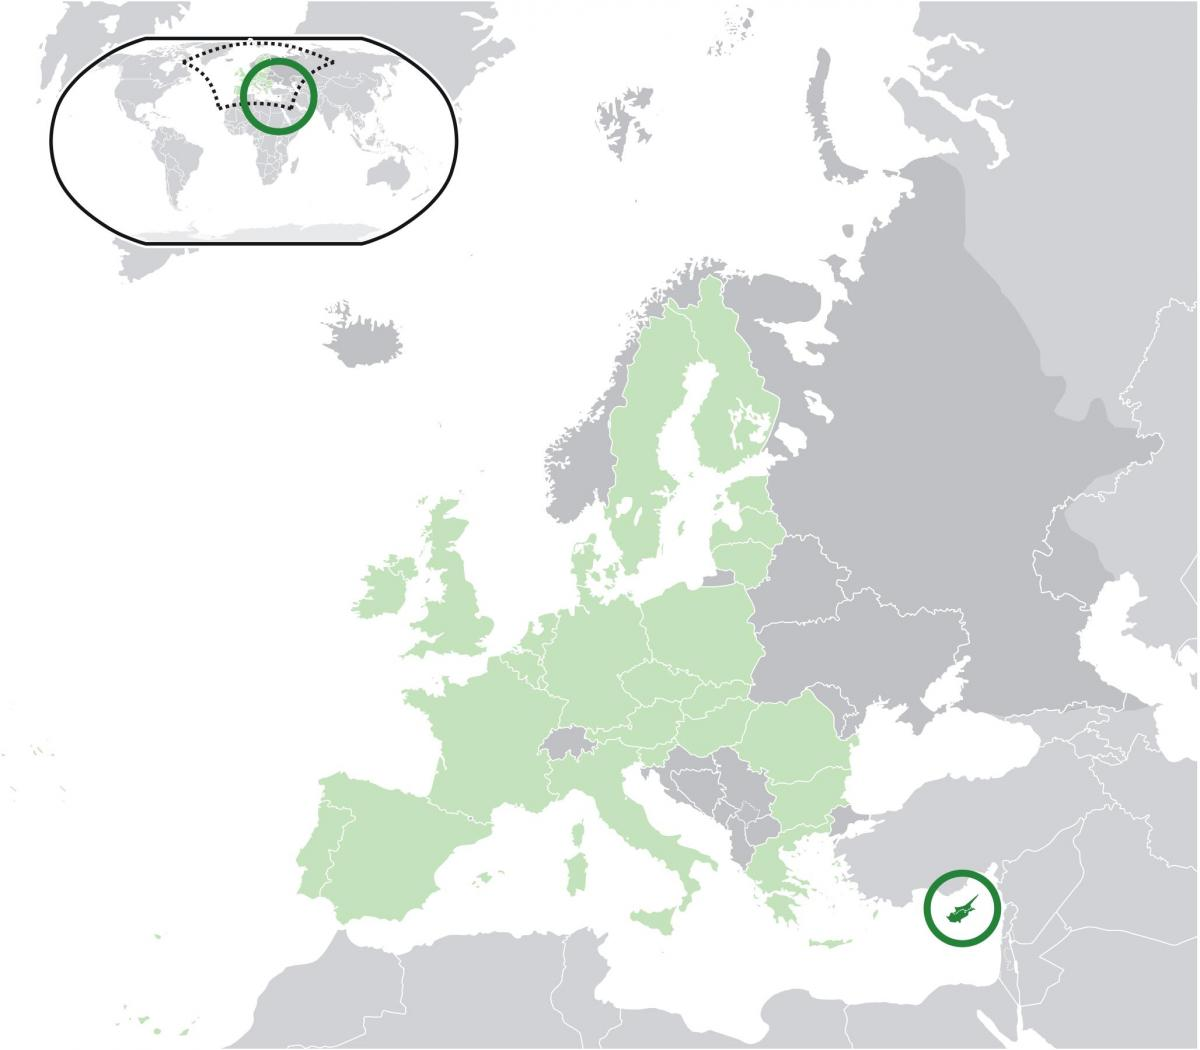 map of europe showing Cyprus